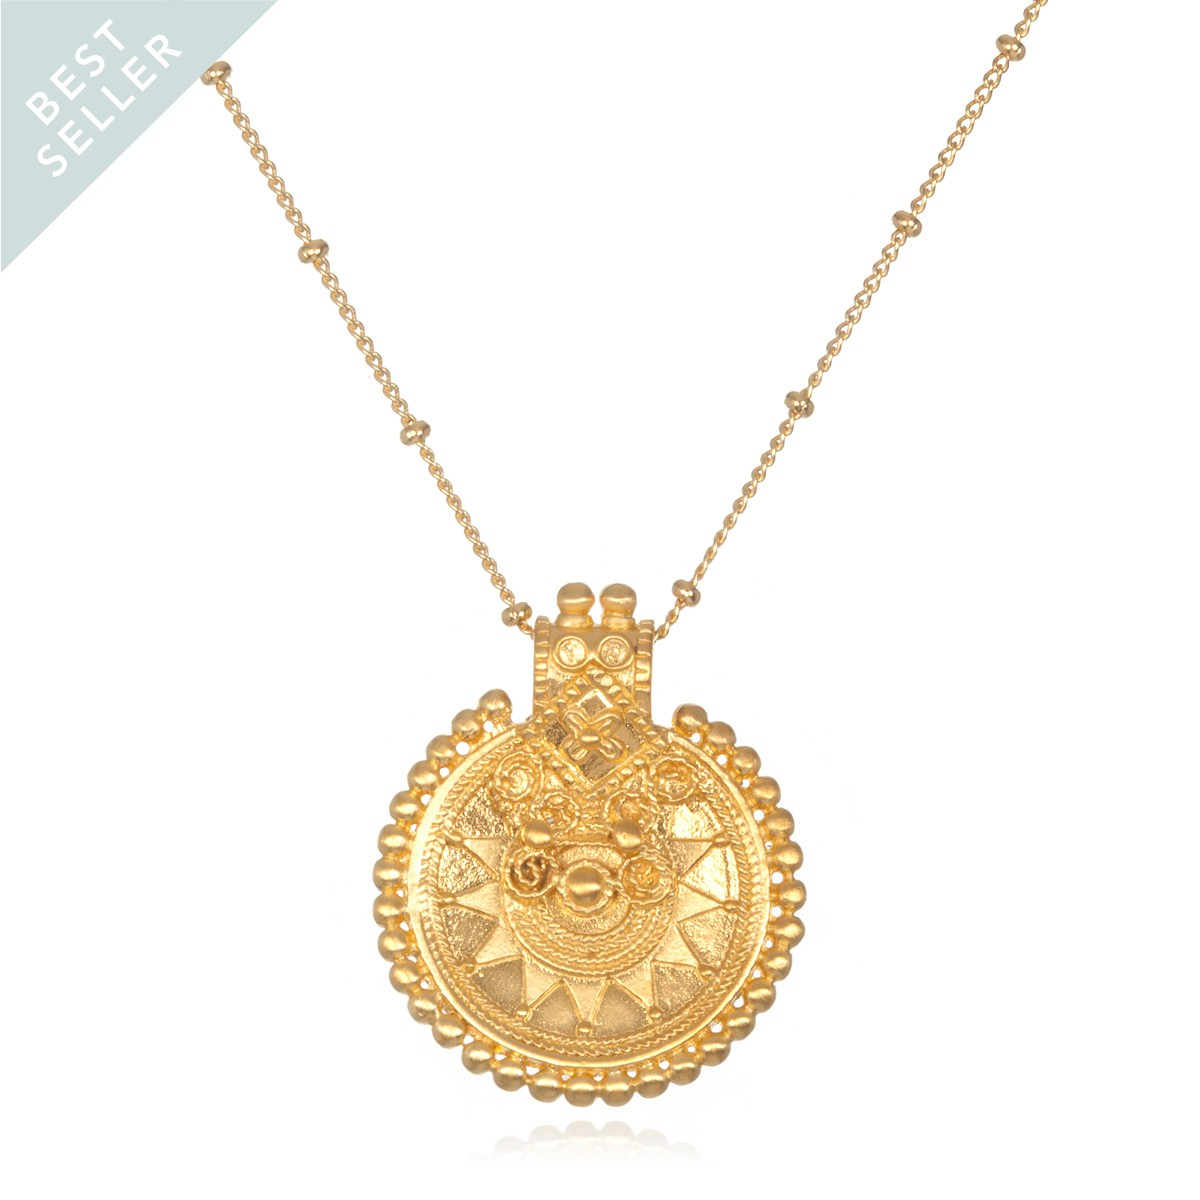 Satya Gold Mandala Necklace